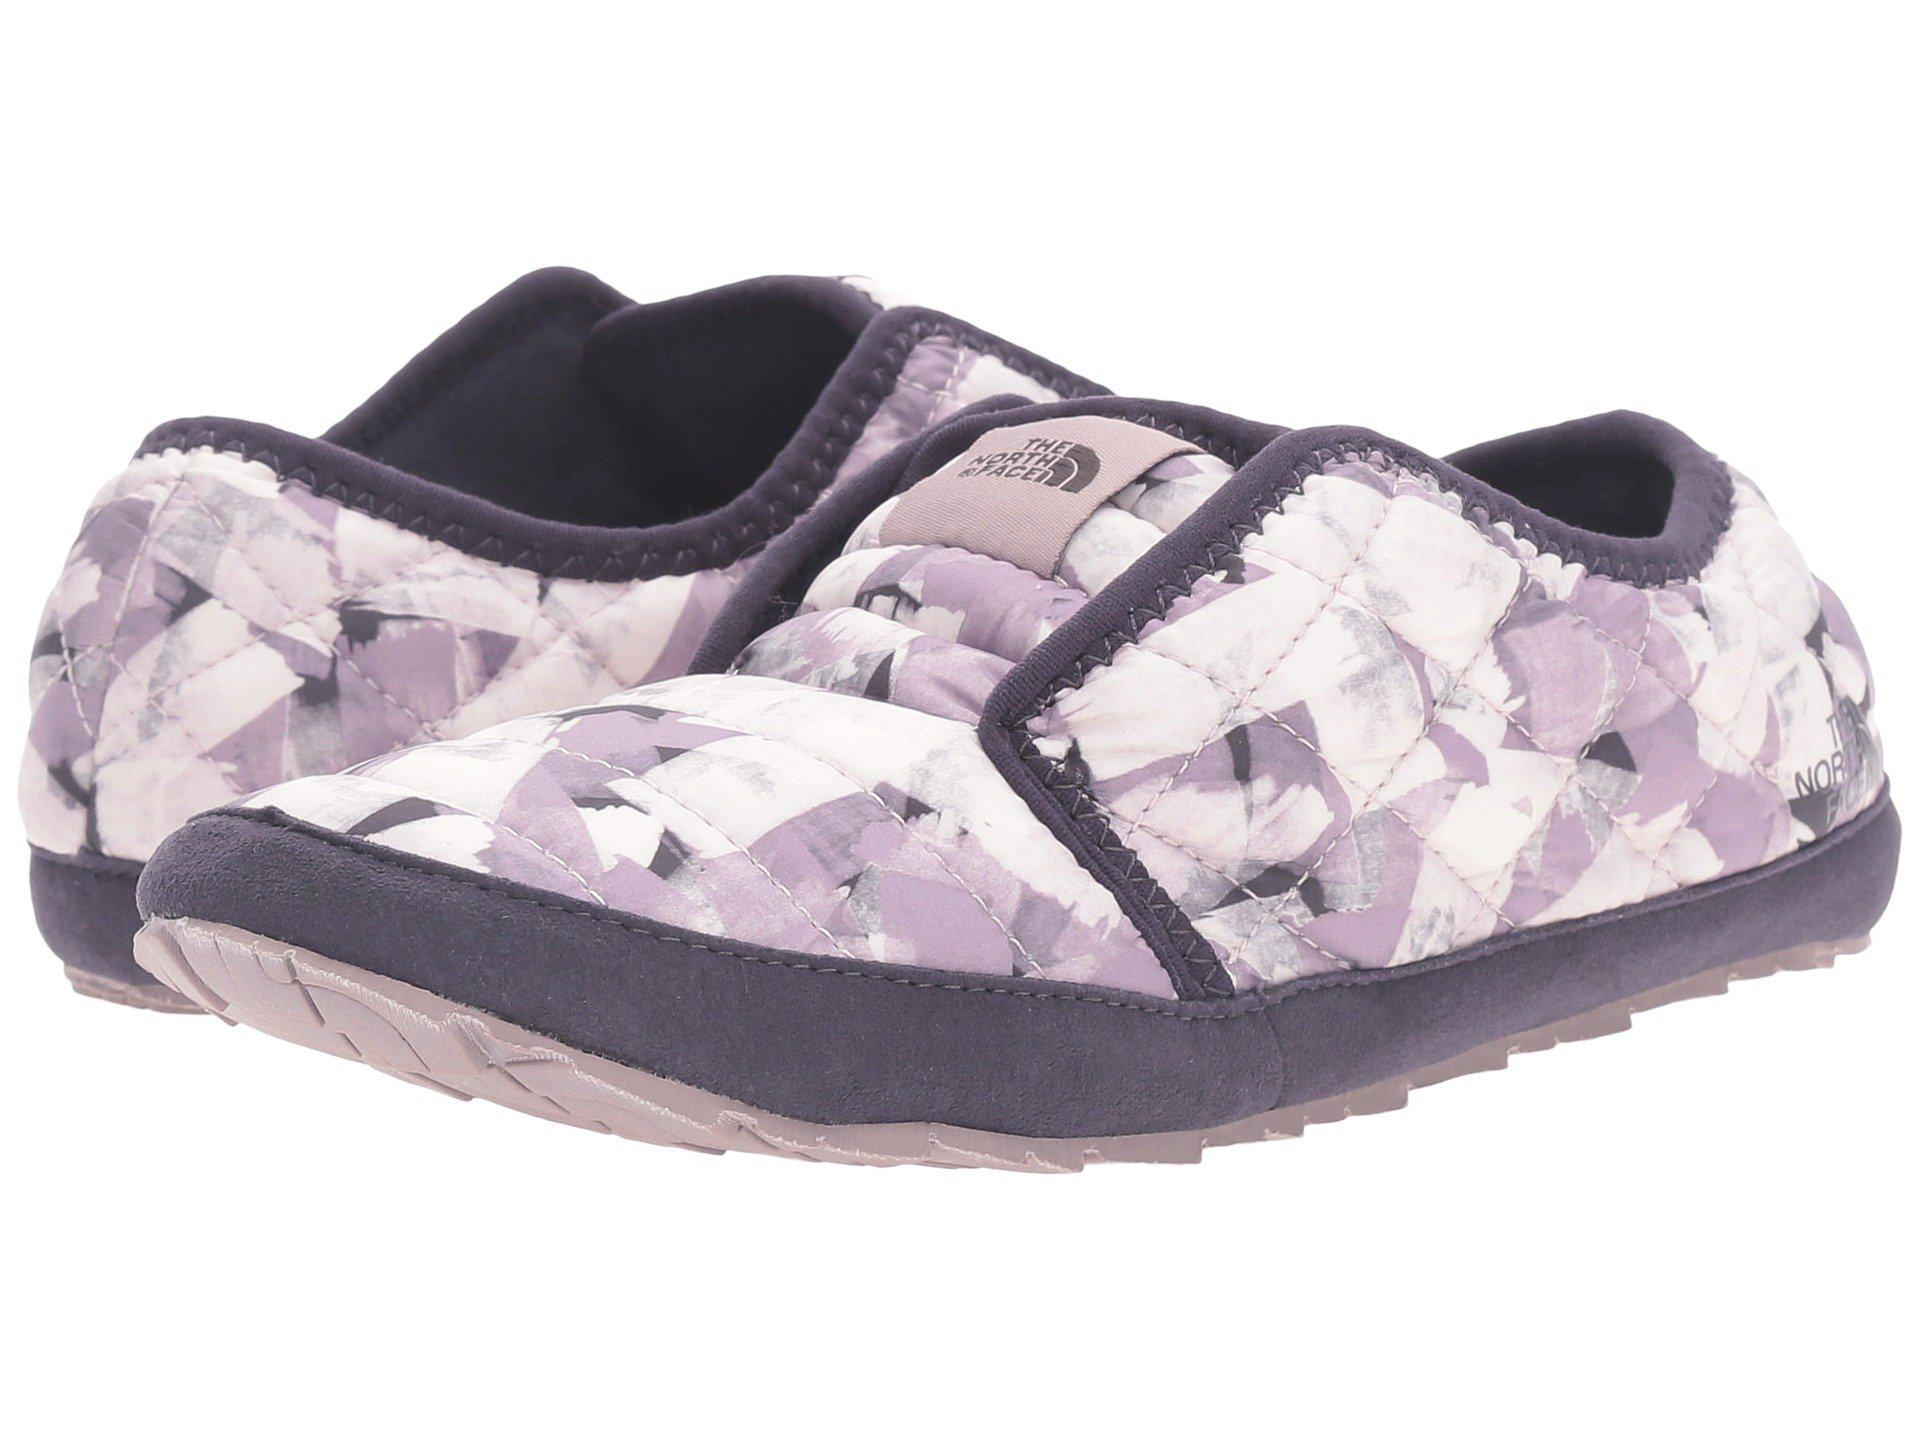 The North Face Loafers Womens - The North Face Thermoball Traction Mule II Purple Blue